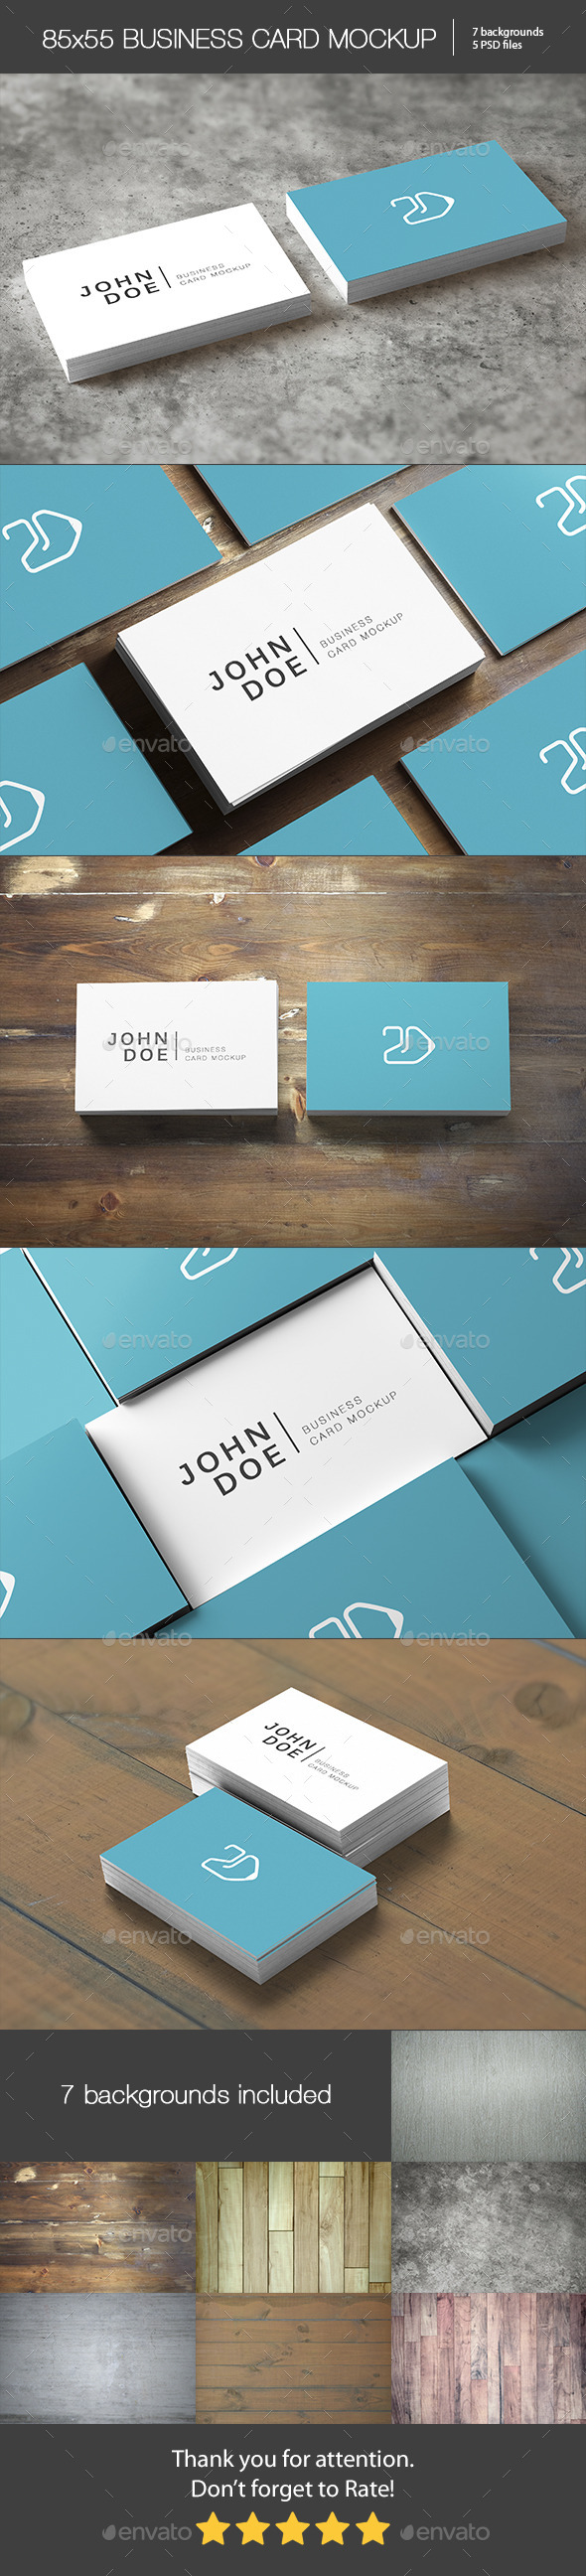 85x55 Business Card Mockup - Business Cards Print